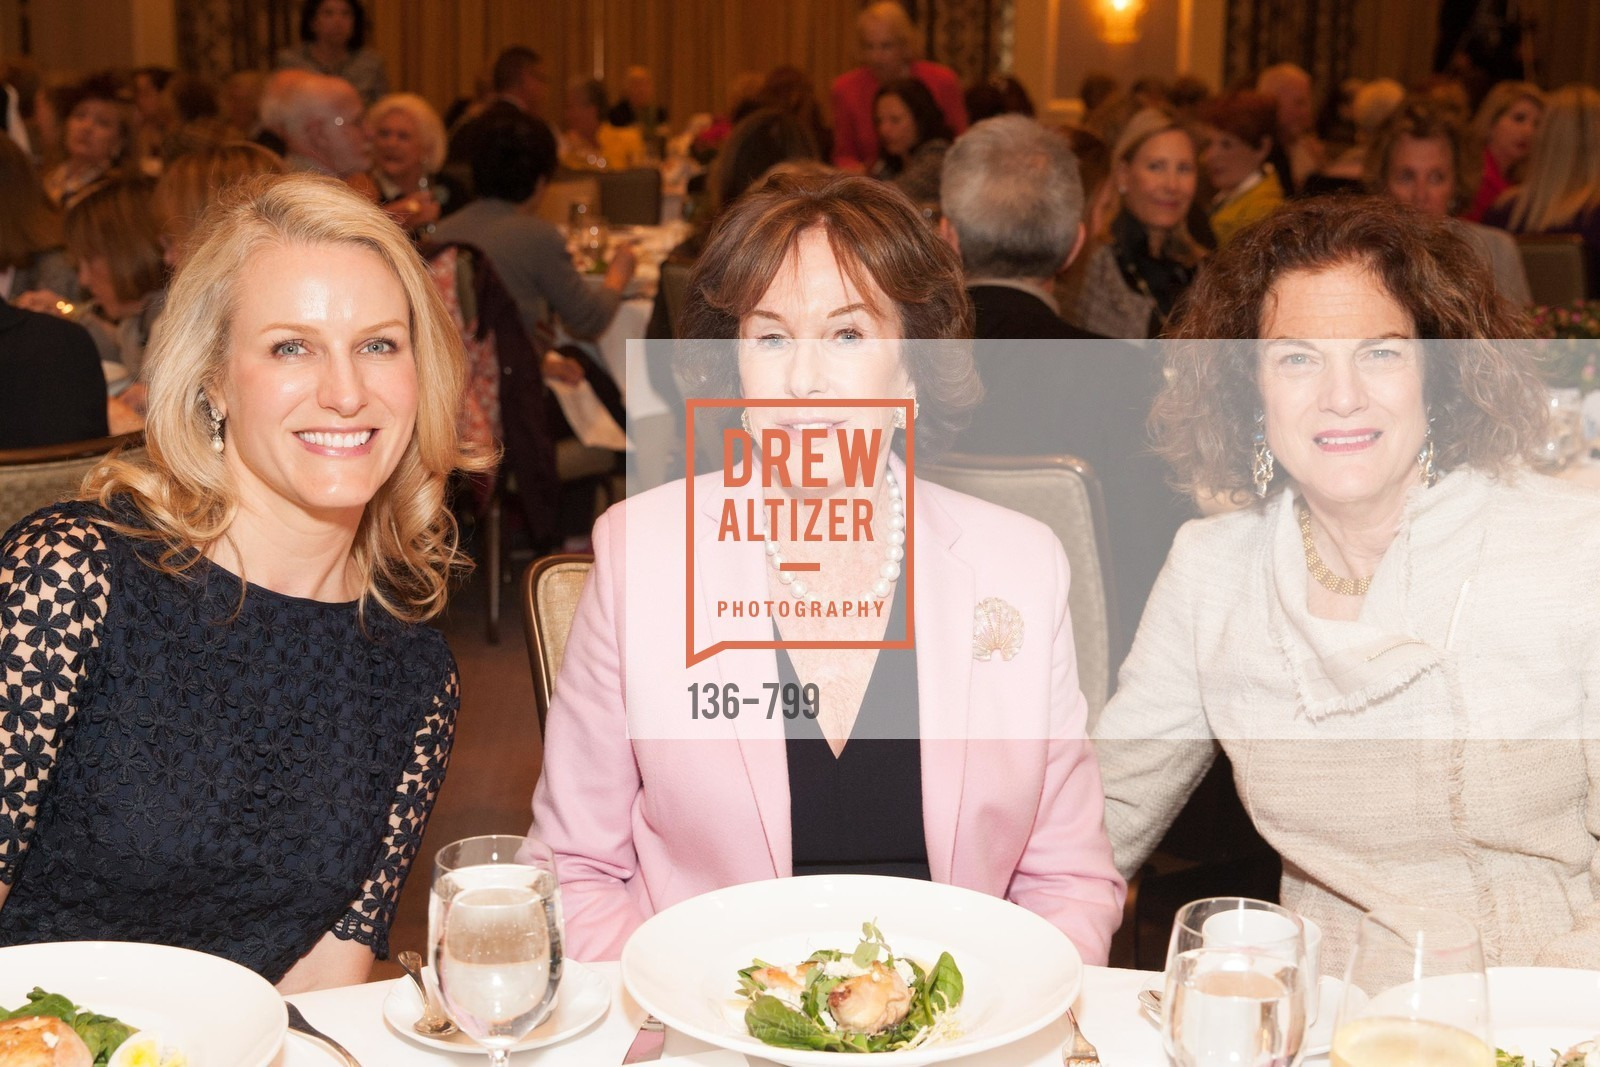 Carlotta Duncan, Jenny Corrigan, Jane Duncan, COMPASSION & CHOICES - Empowerment Luncheon, US, April 24th, 2015,Drew Altizer, Drew Altizer Photography, full-service agency, private events, San Francisco photographer, photographer california